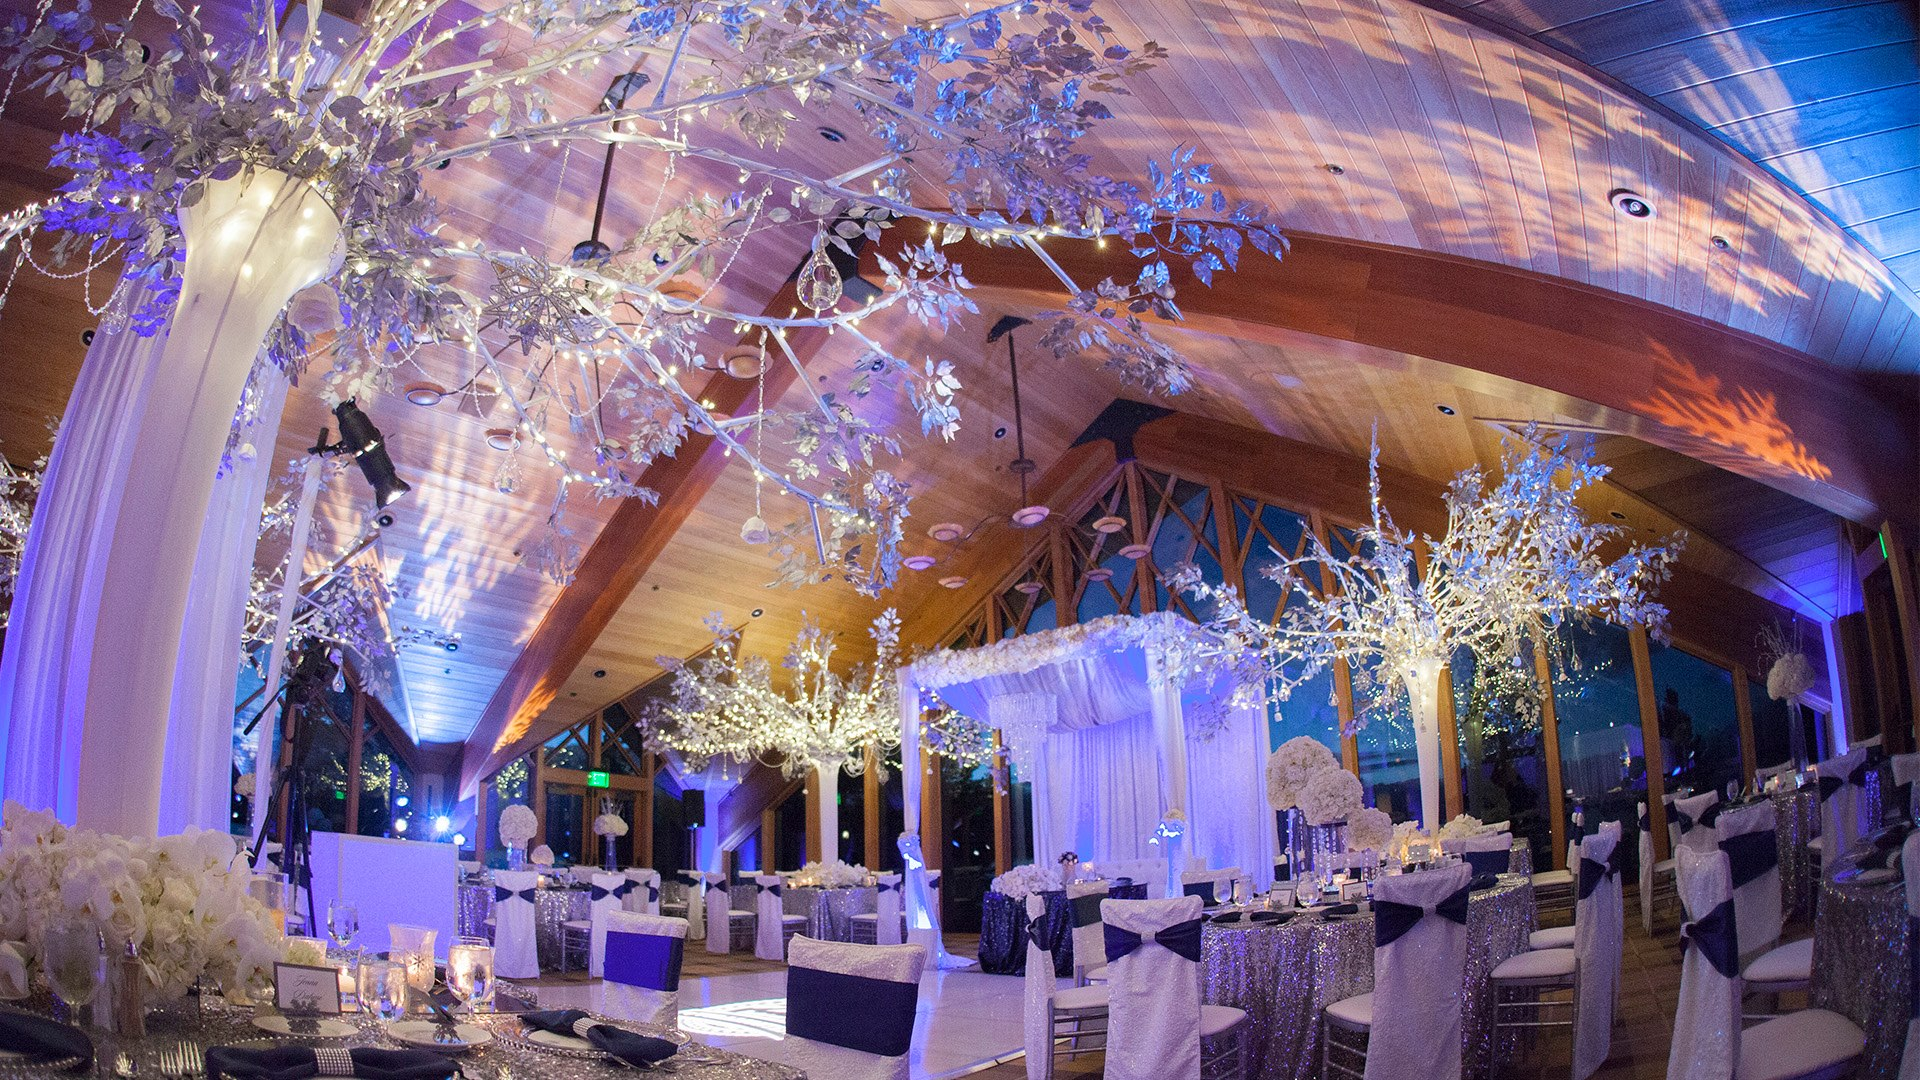 Winter Wonderland Wedding At Edgewood Tahoe Extreme